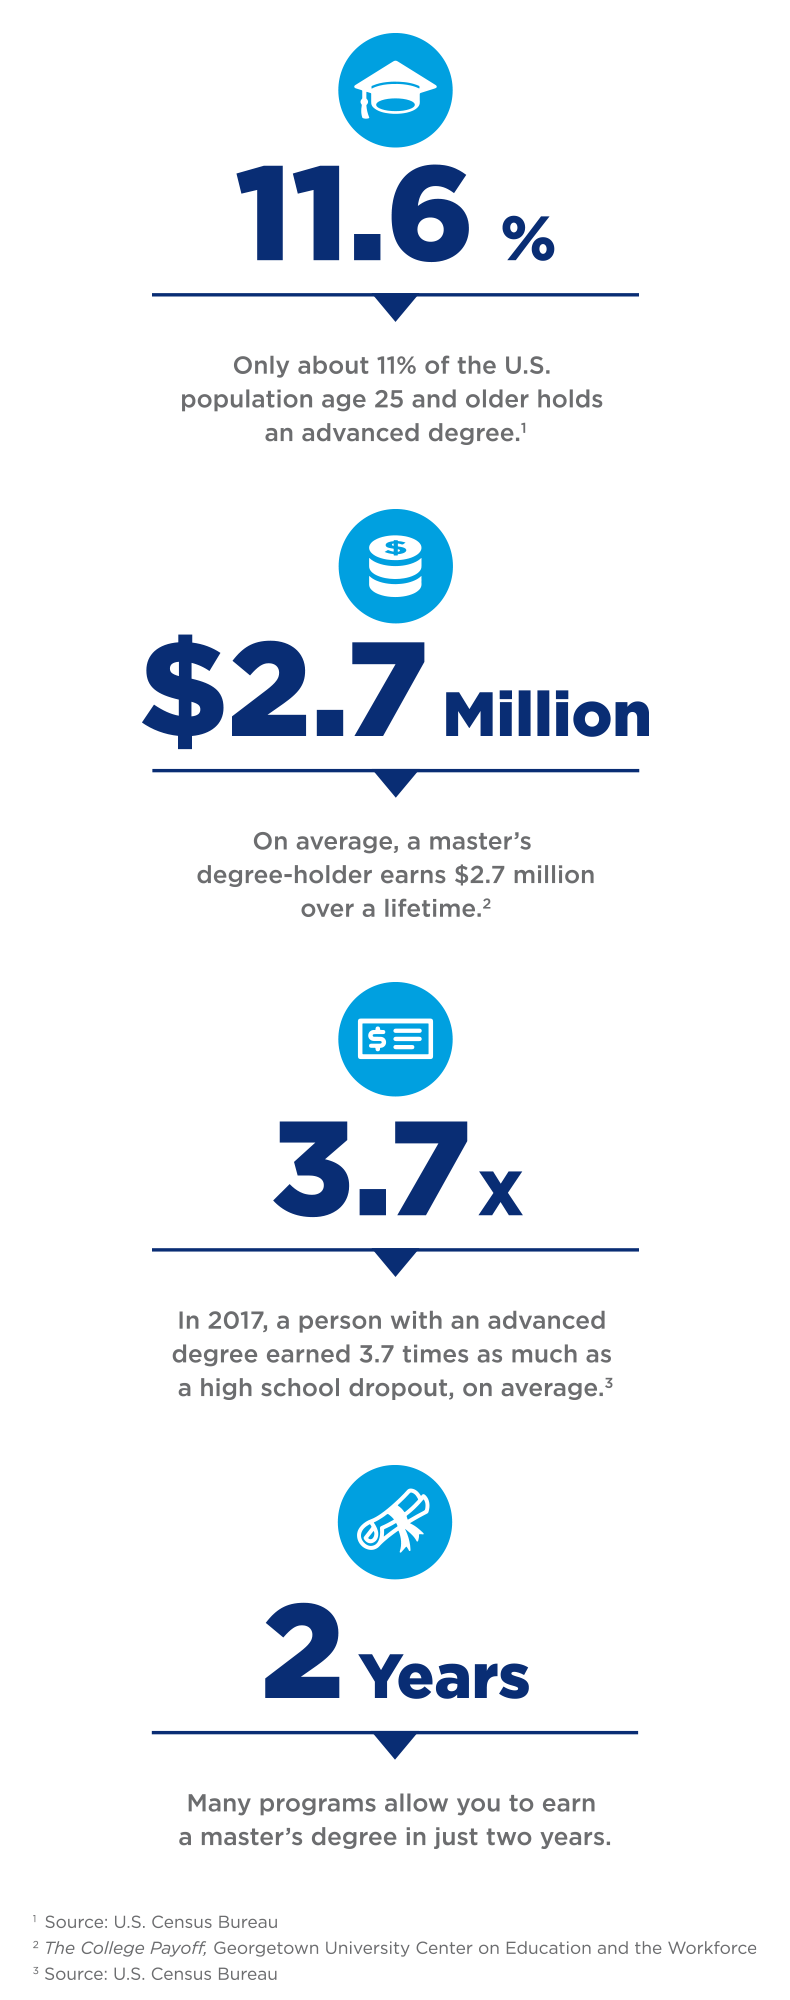 Four Reasons to Get a Master's Degree Infographic: 11.6% - Only about 11% of the U.S. population age 25 and older holds an advanced degree. $2.7 million - On average, a master's degree-holder earns $2.7 million over a lifetime. 3.7x - In 2017, a person with an advanced degree earned 3.7 times as much as a high school dropout, on average. 2 years - Many programs allow you to earn a master's degree in just two years. Sources: U.S. Census Bureau, The College Payoff - Georgetown University Center on Education and the Workforce.